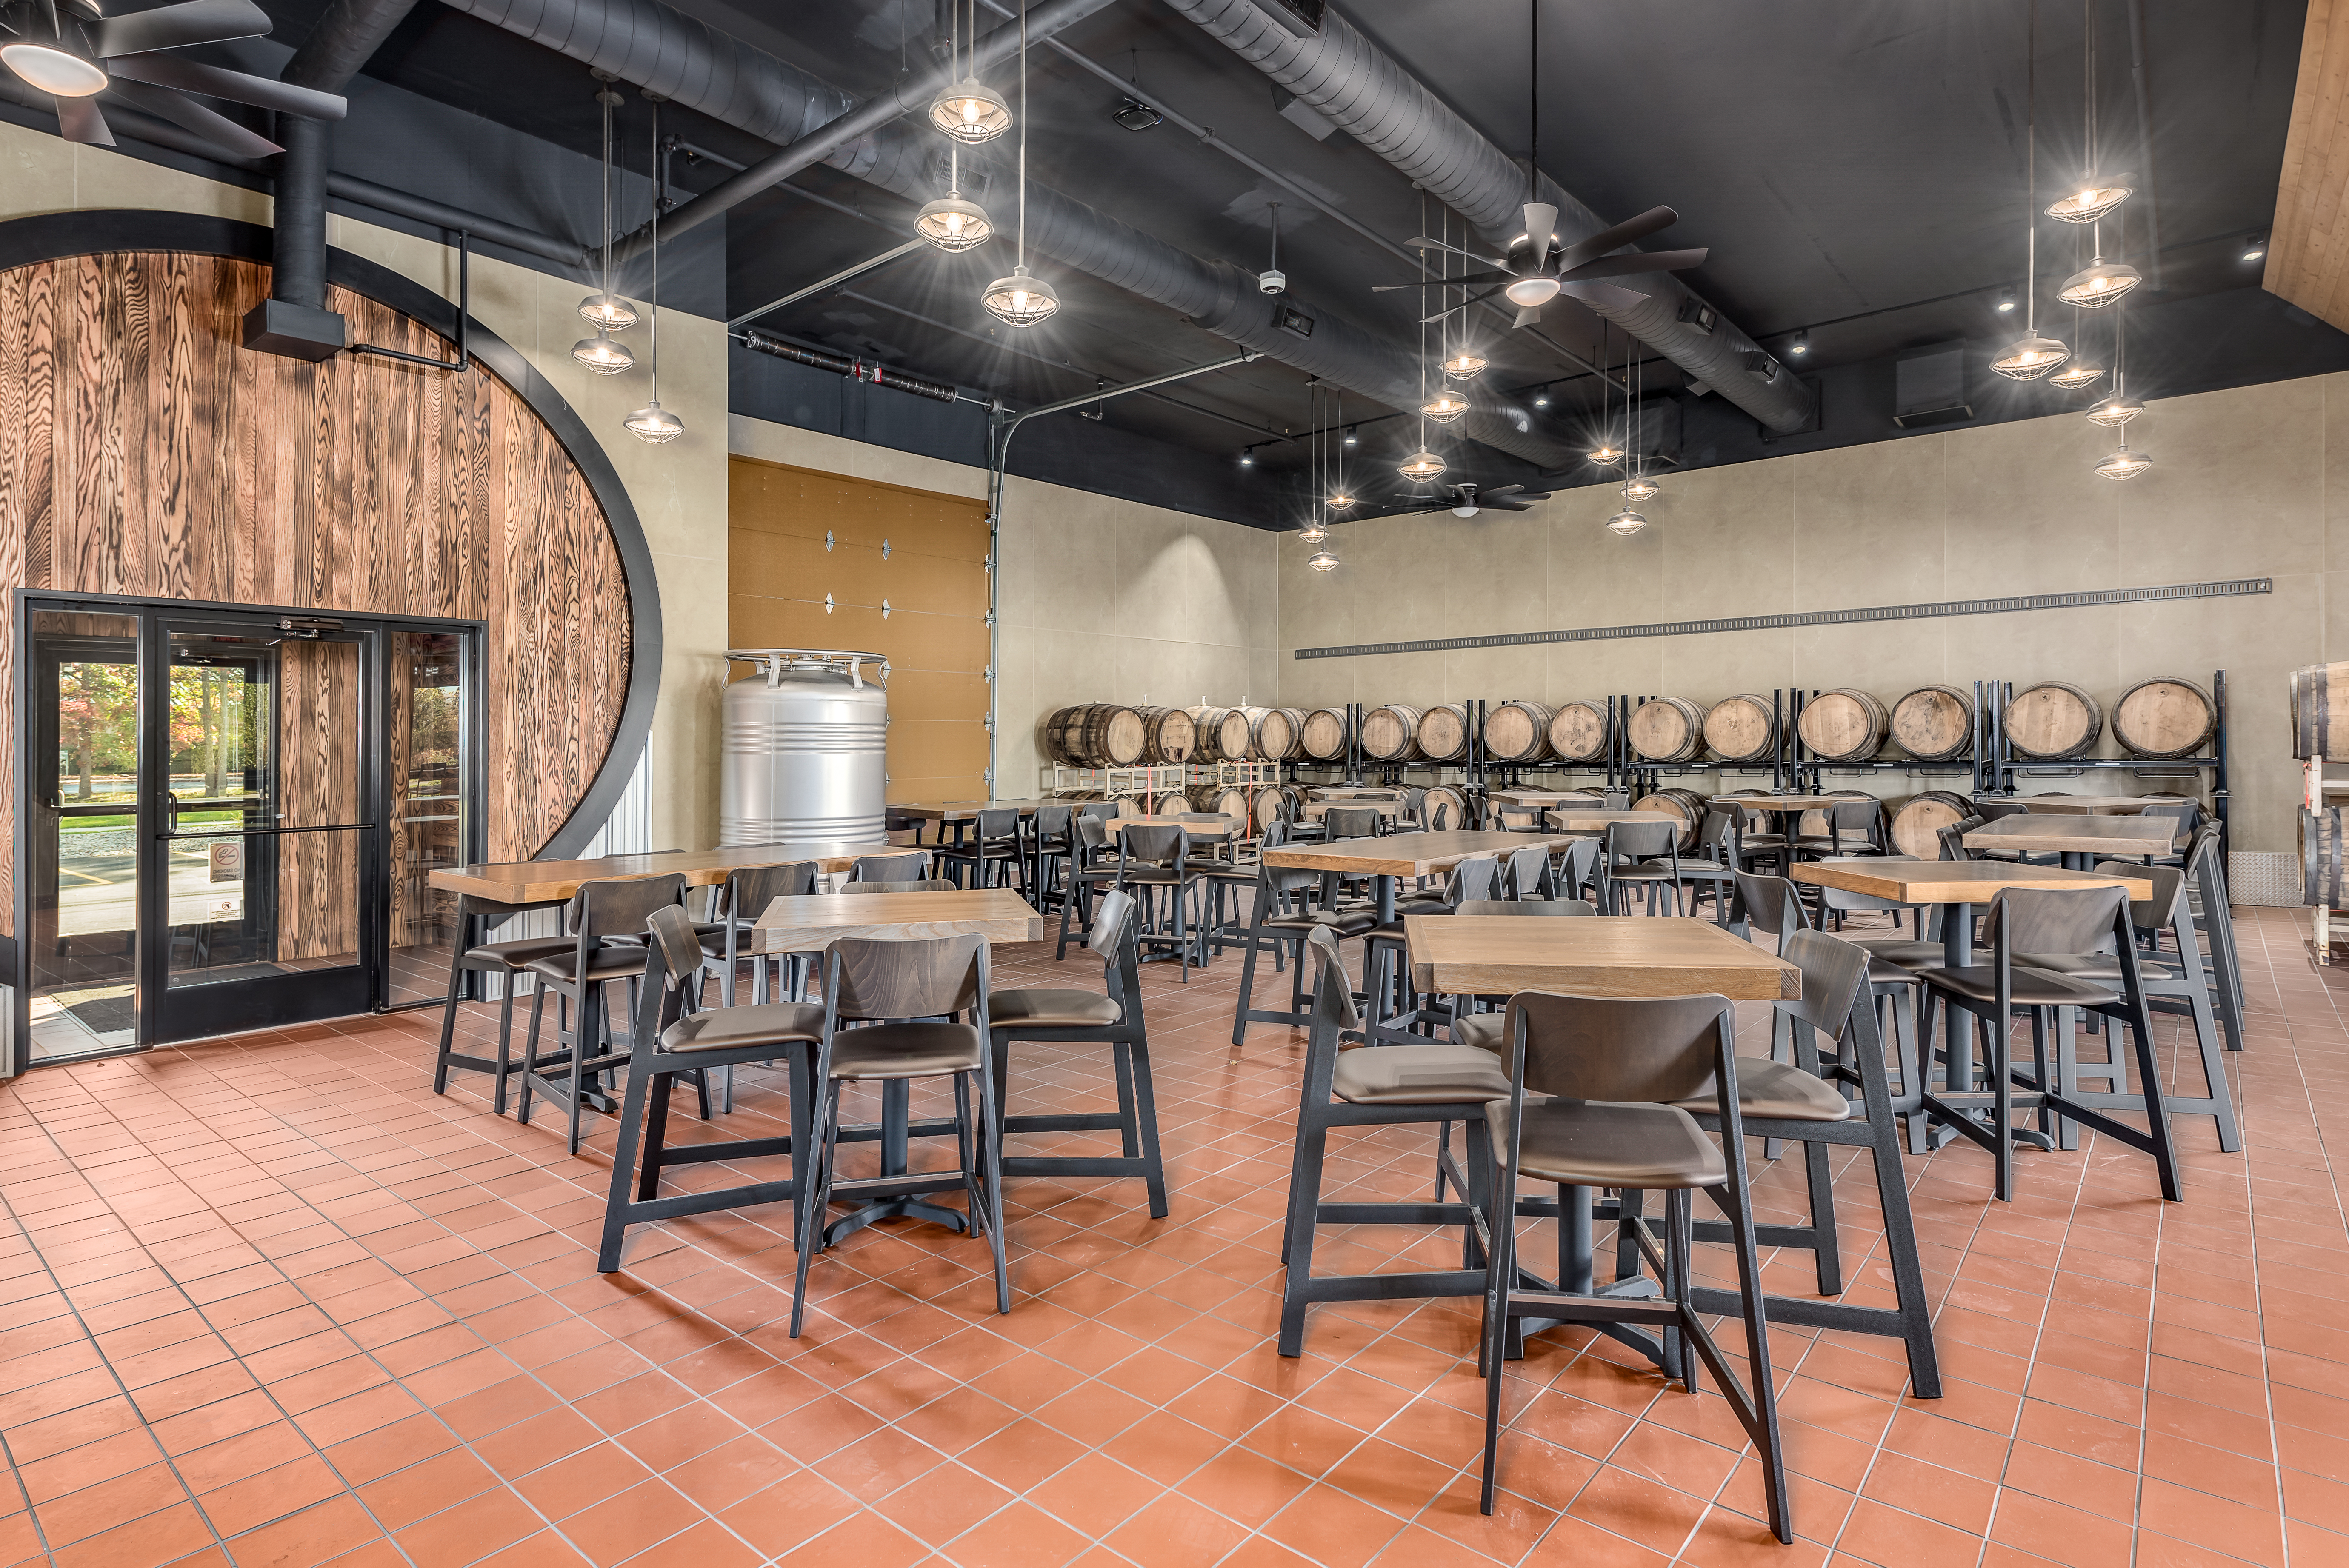 Interior view of the Red Keg Barrel House Event Venue showing the seating accommodations and the equipment used during the barrel aging process.